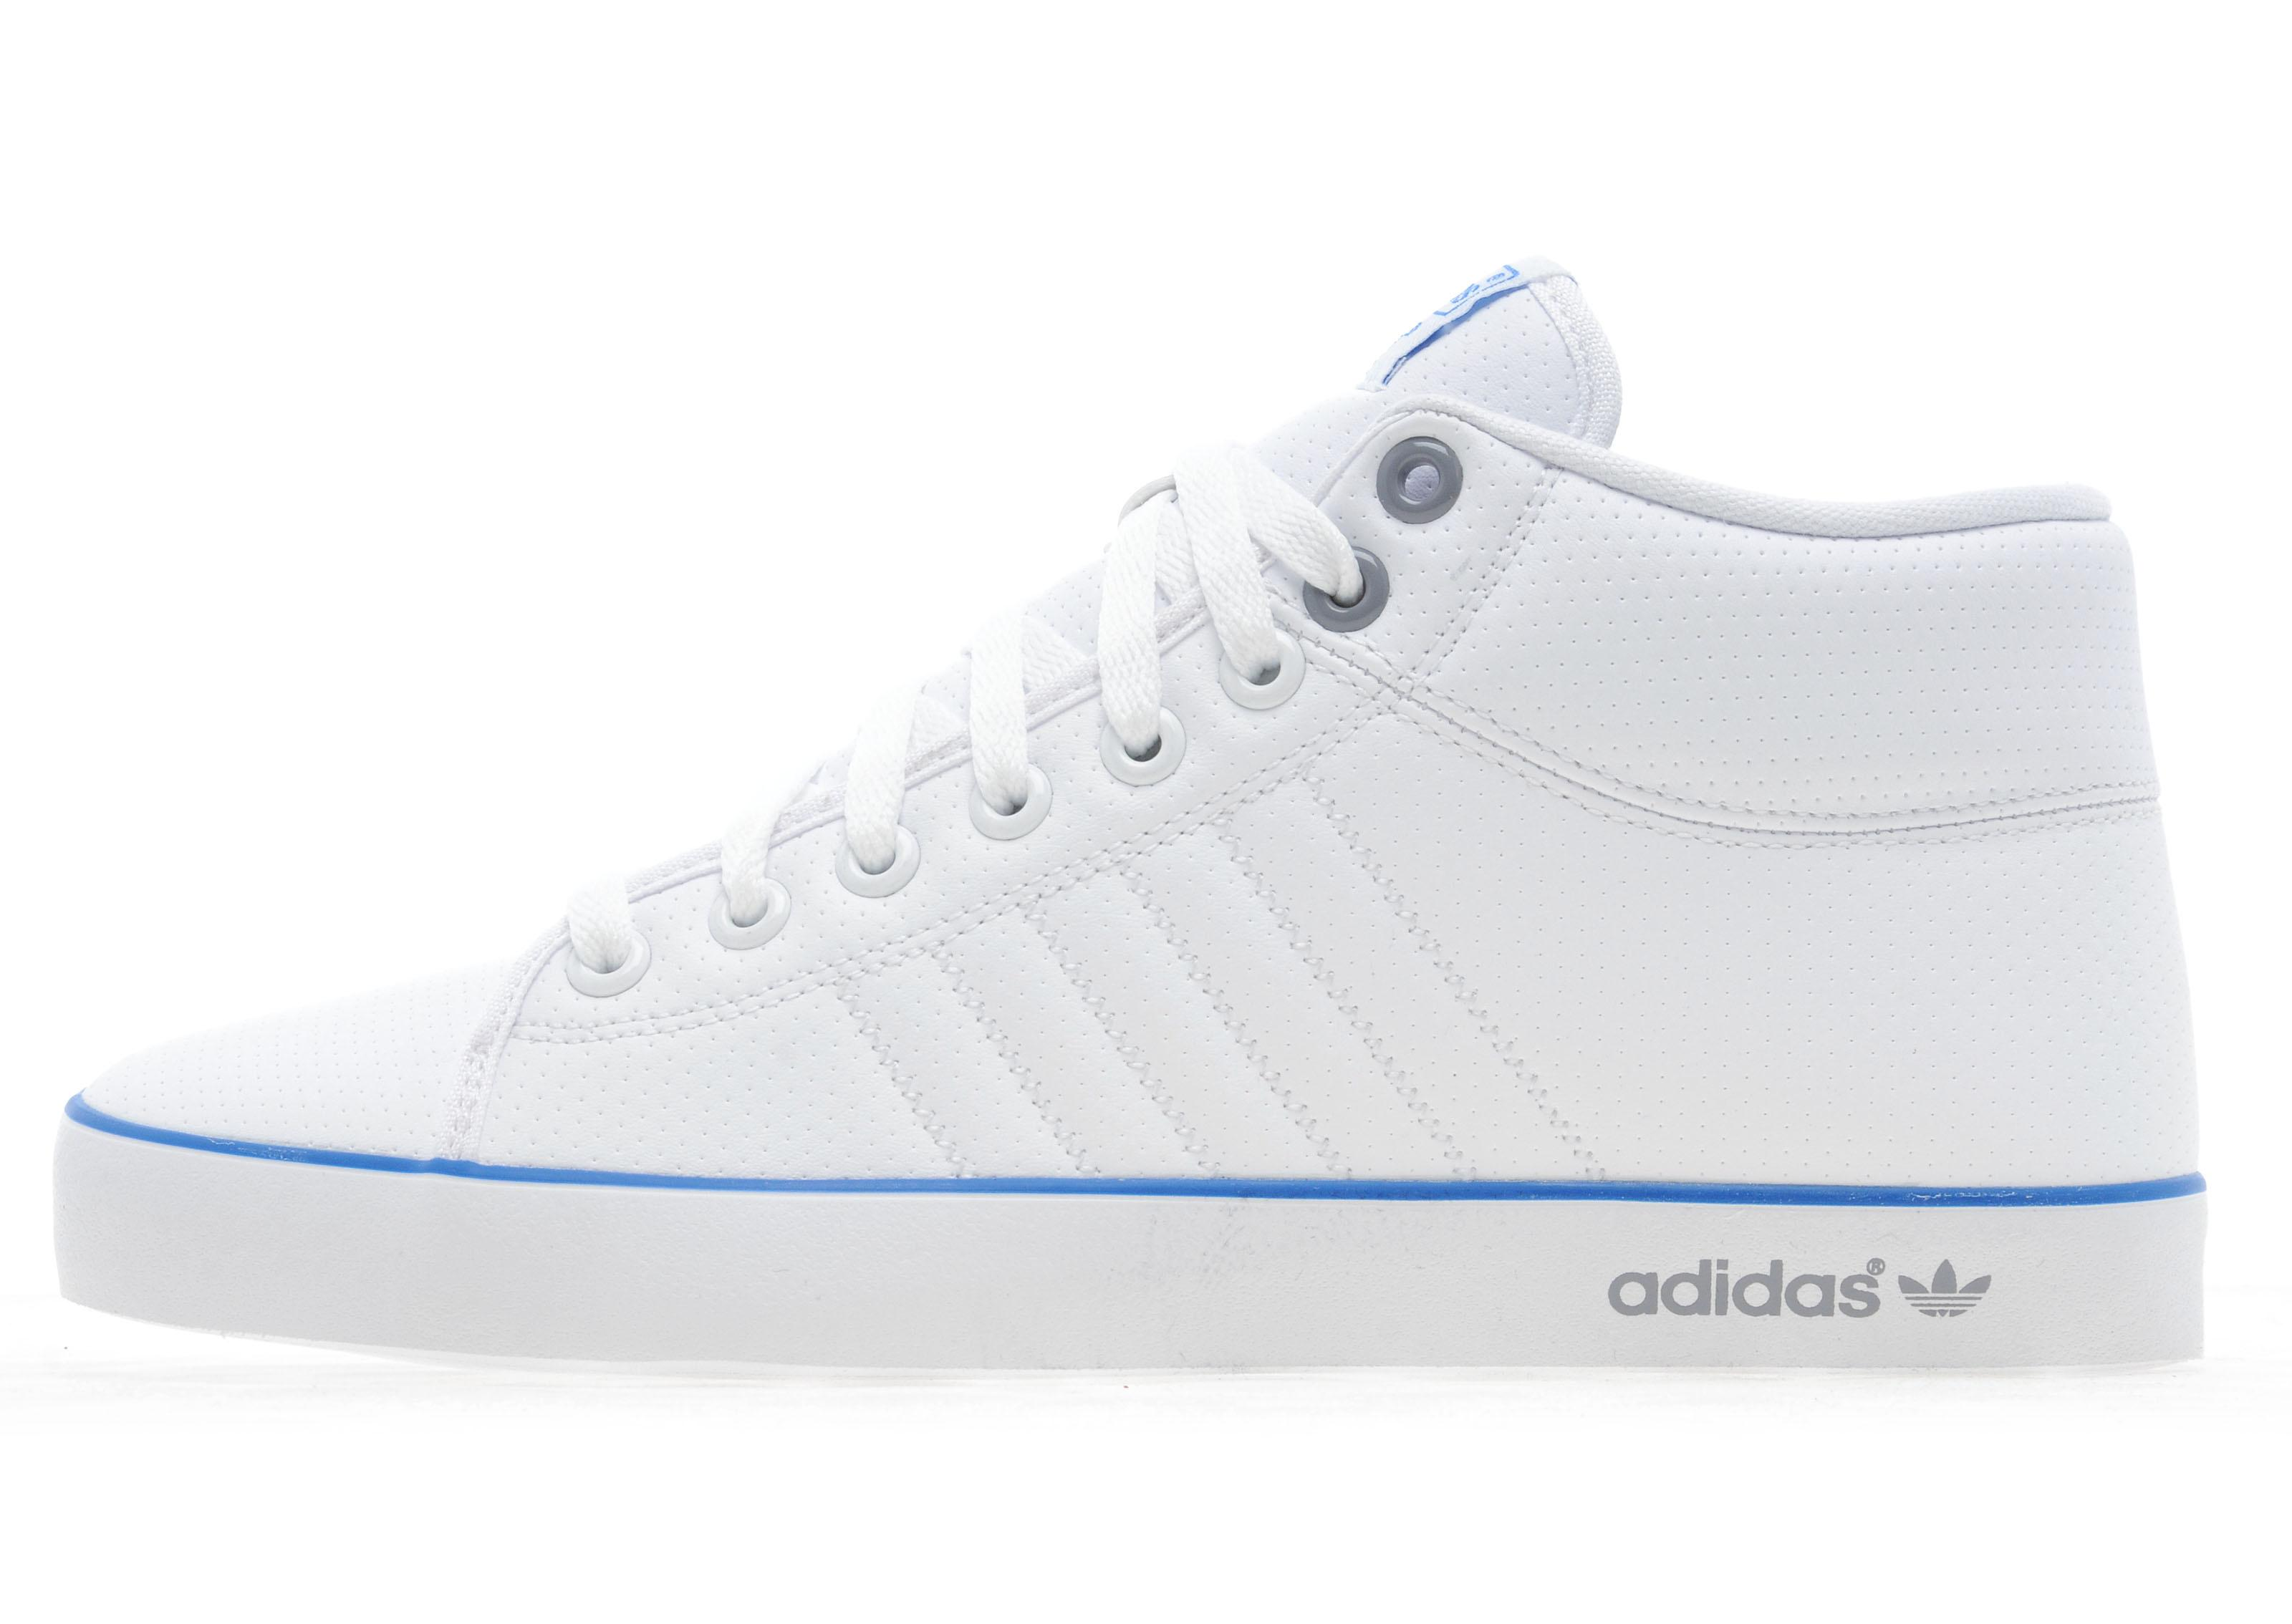 adidas indoor tennis shoes